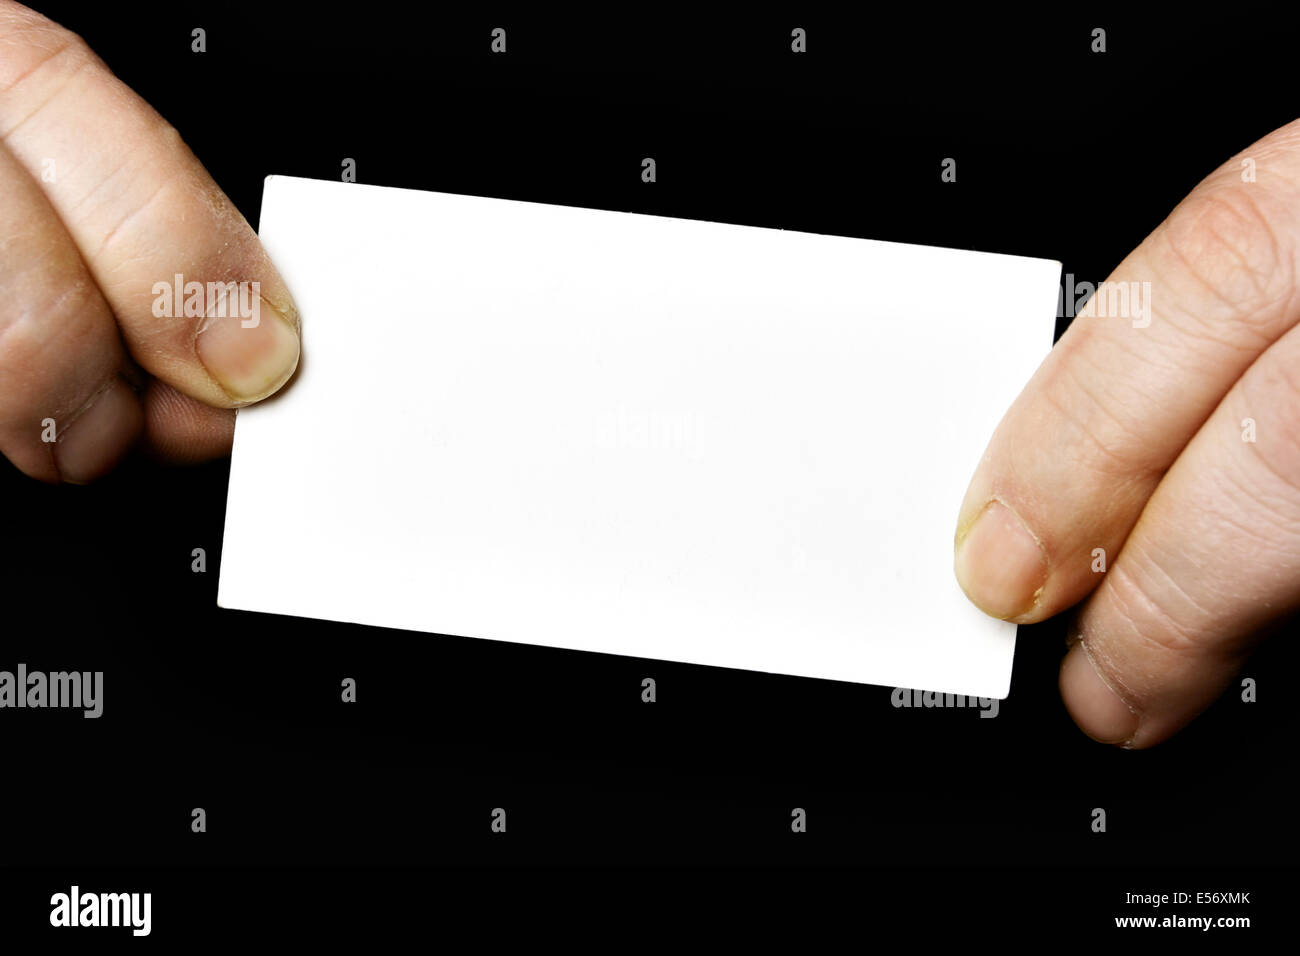 Blank business card in hands over black background Stock Photo ...